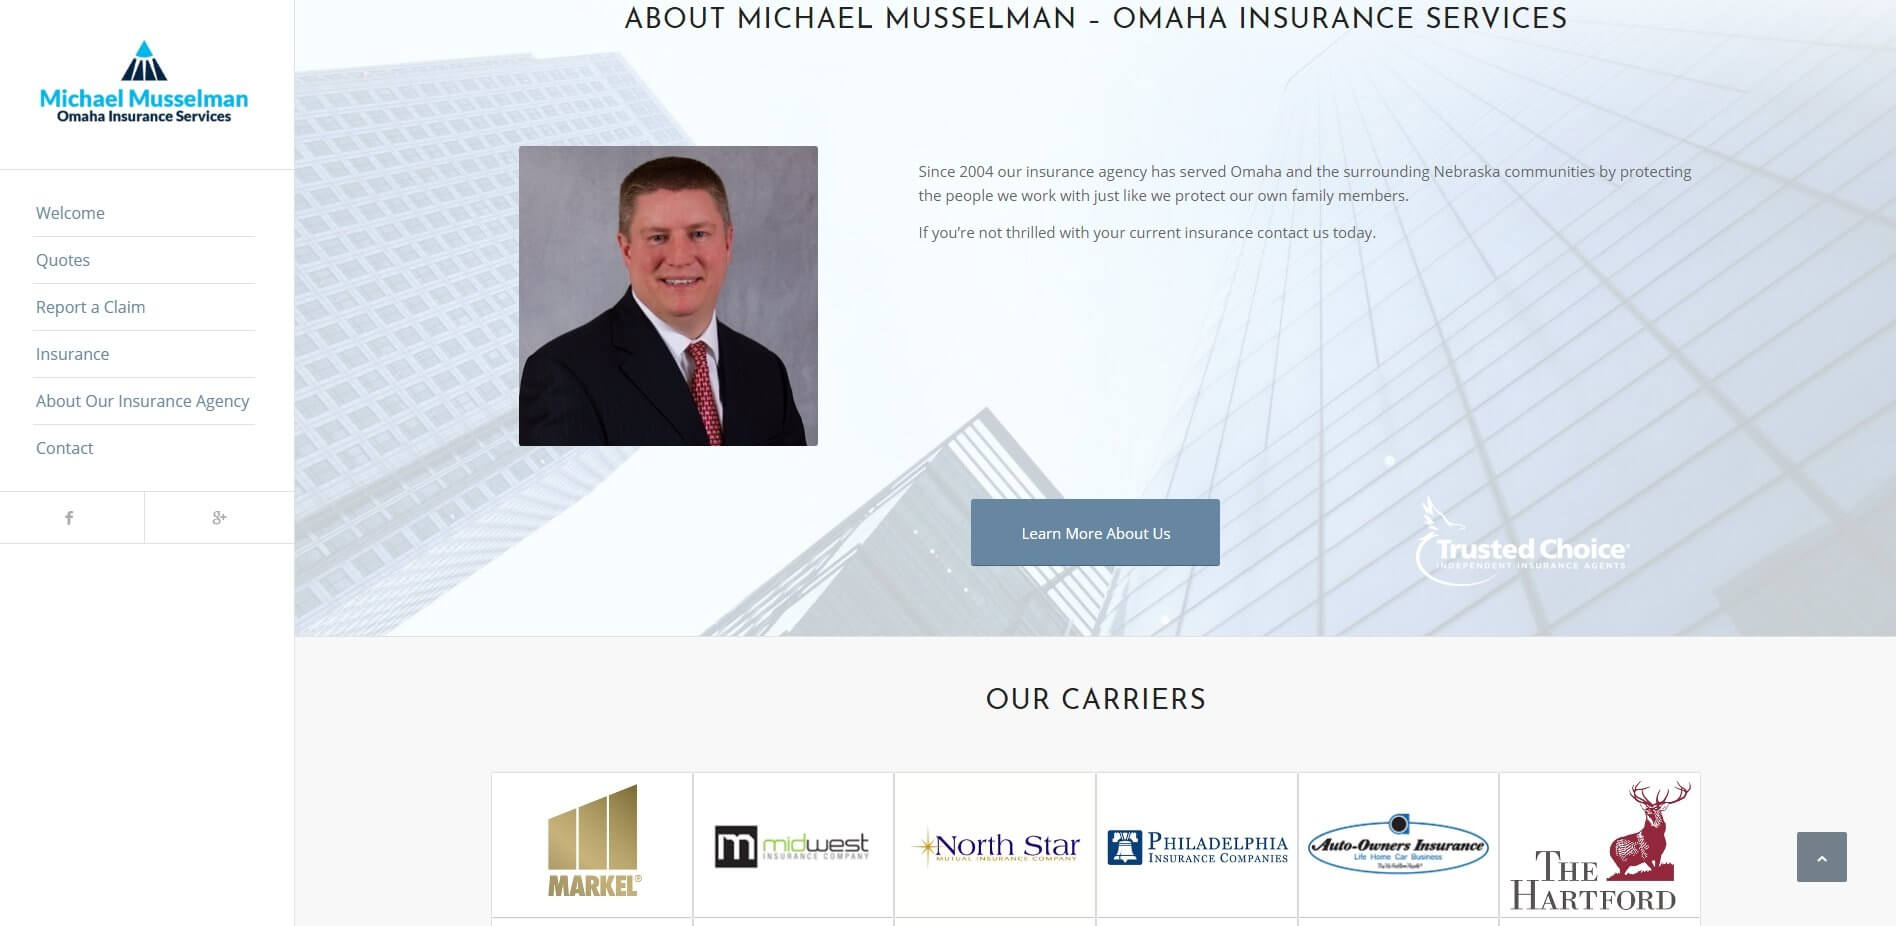 Valley List Welcomes – Omaha Insurance Services